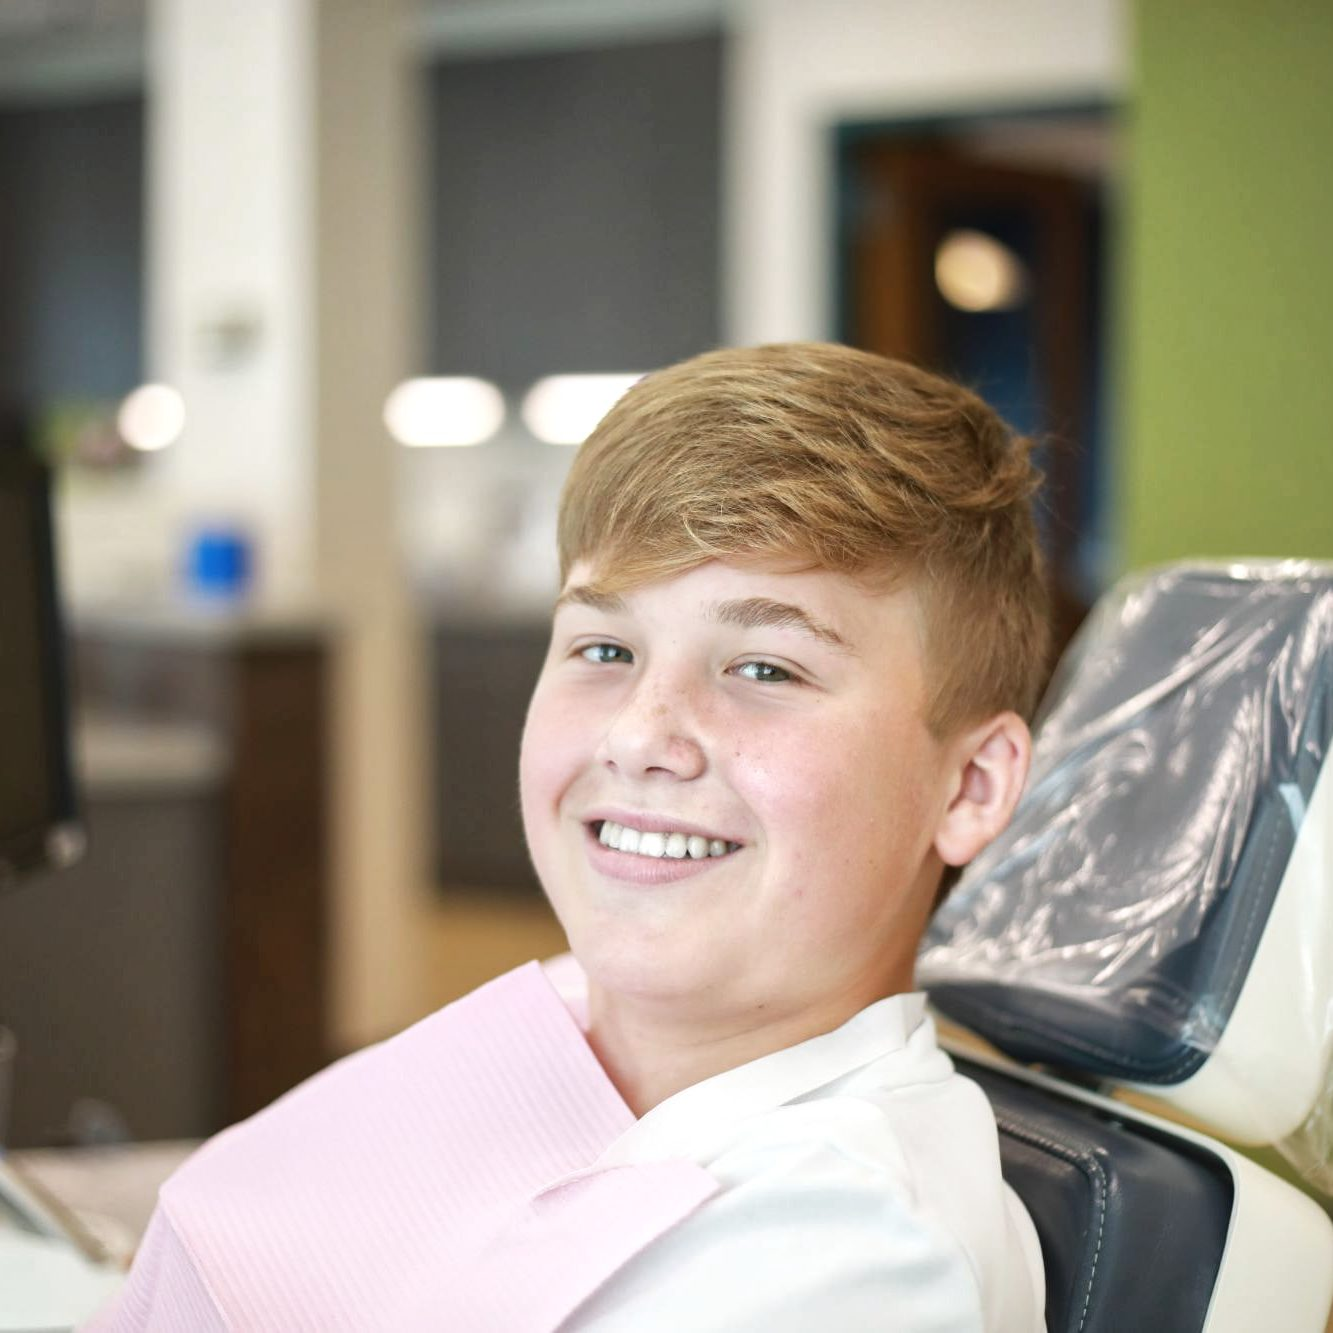 teen patient smiling during a visit